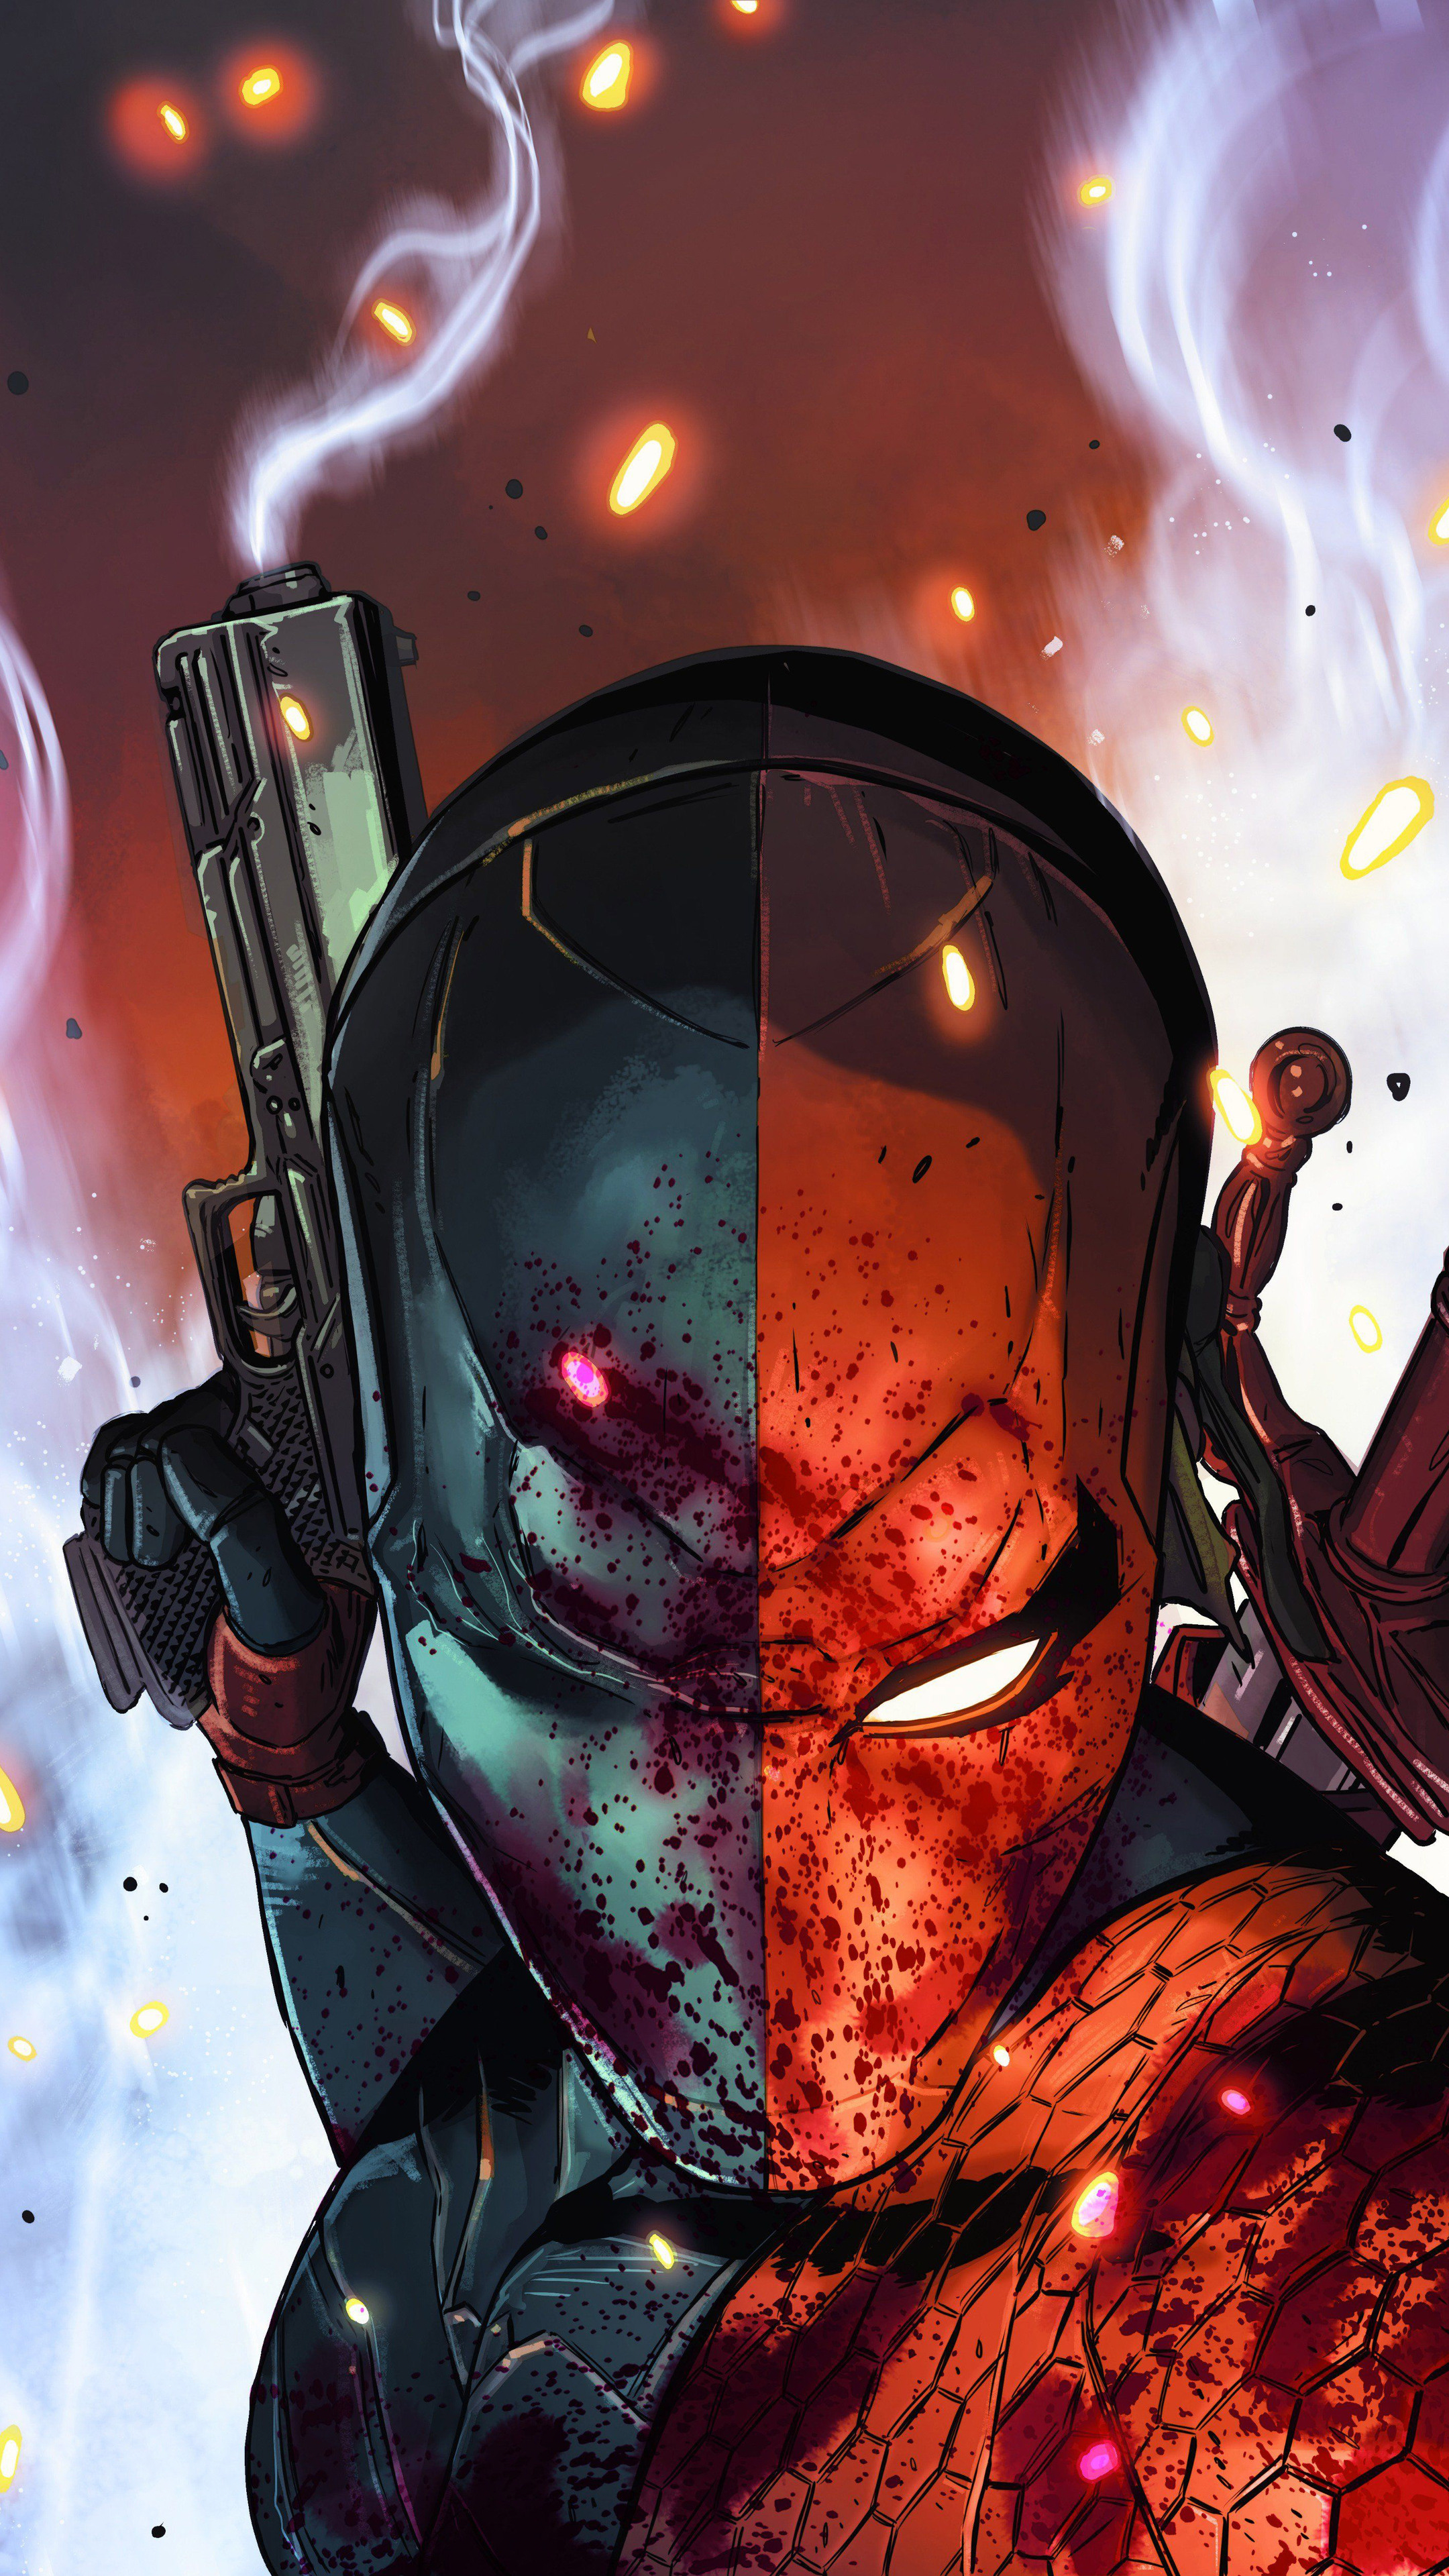 deathstroke-new-art-mq.jpg